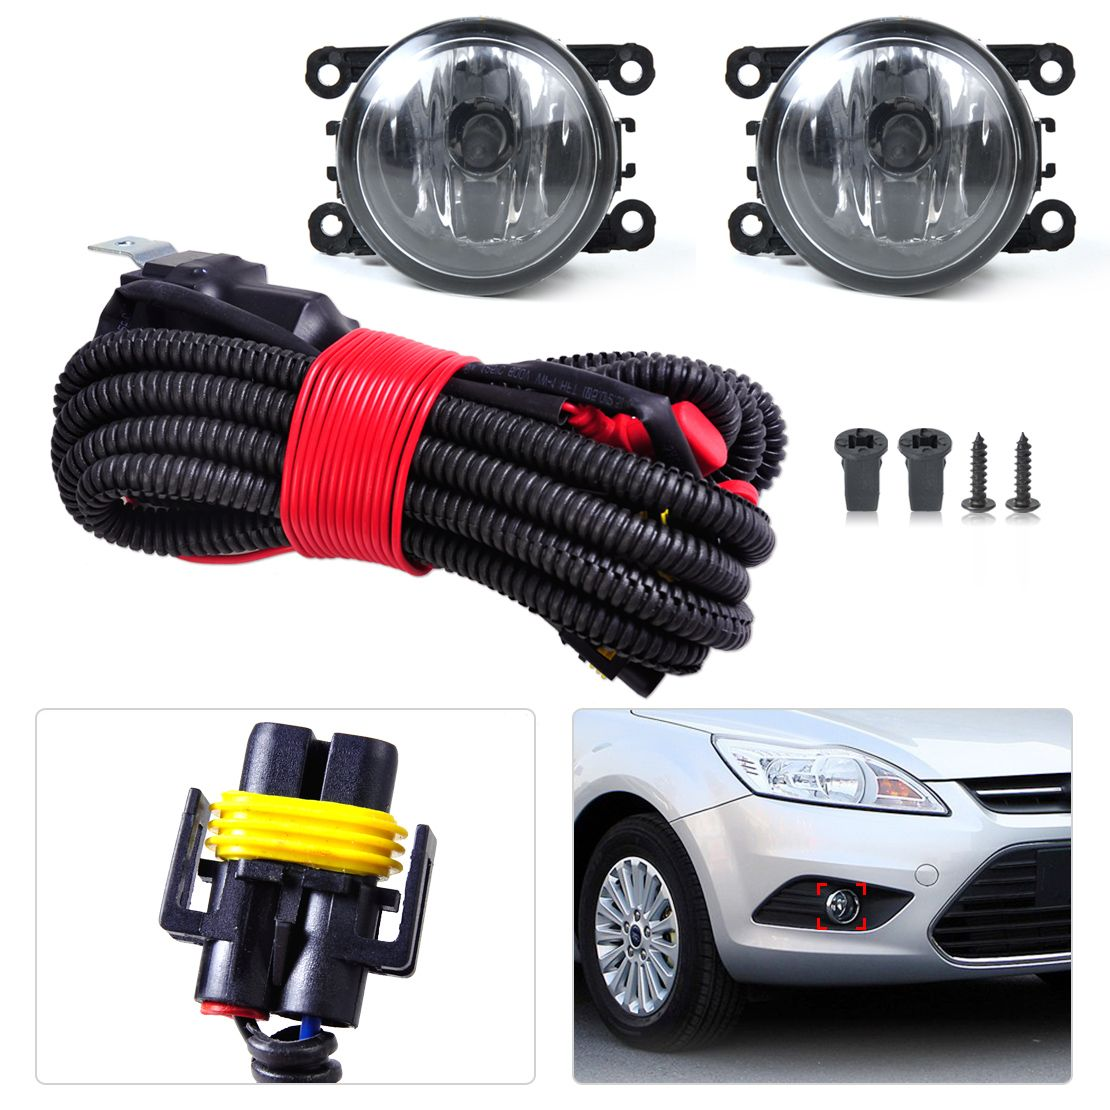 new h11 wiring harness sockets wire connector 2 fog lights lamp 4f9z 15200 aa for ford focus honda cr v pilot acura tsx nissan [ 1110 x 1110 Pixel ]